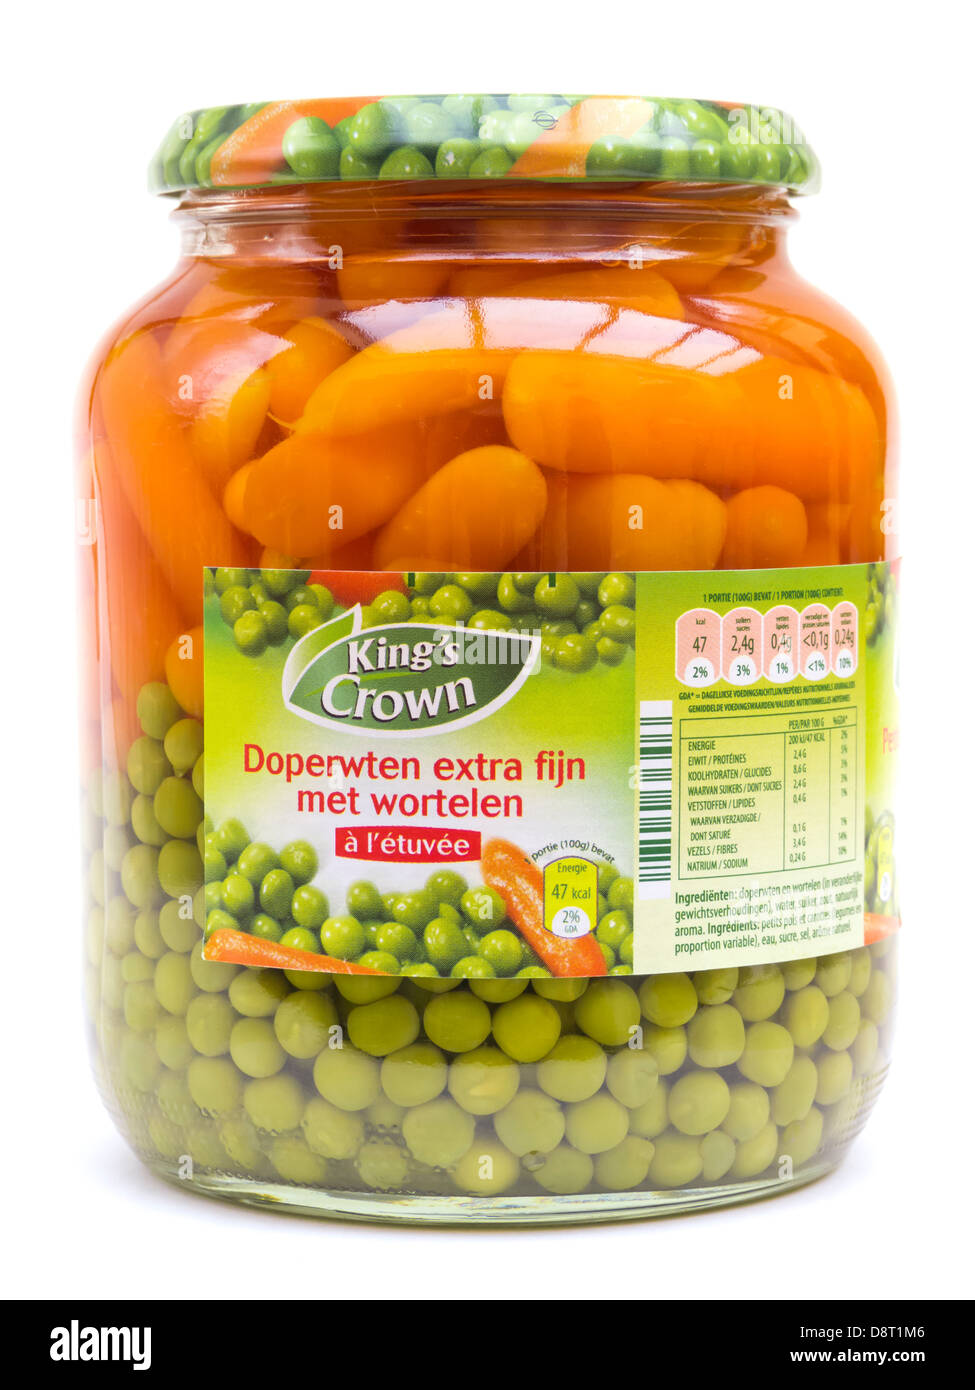 Kings Crown Canned Food - Stock Image